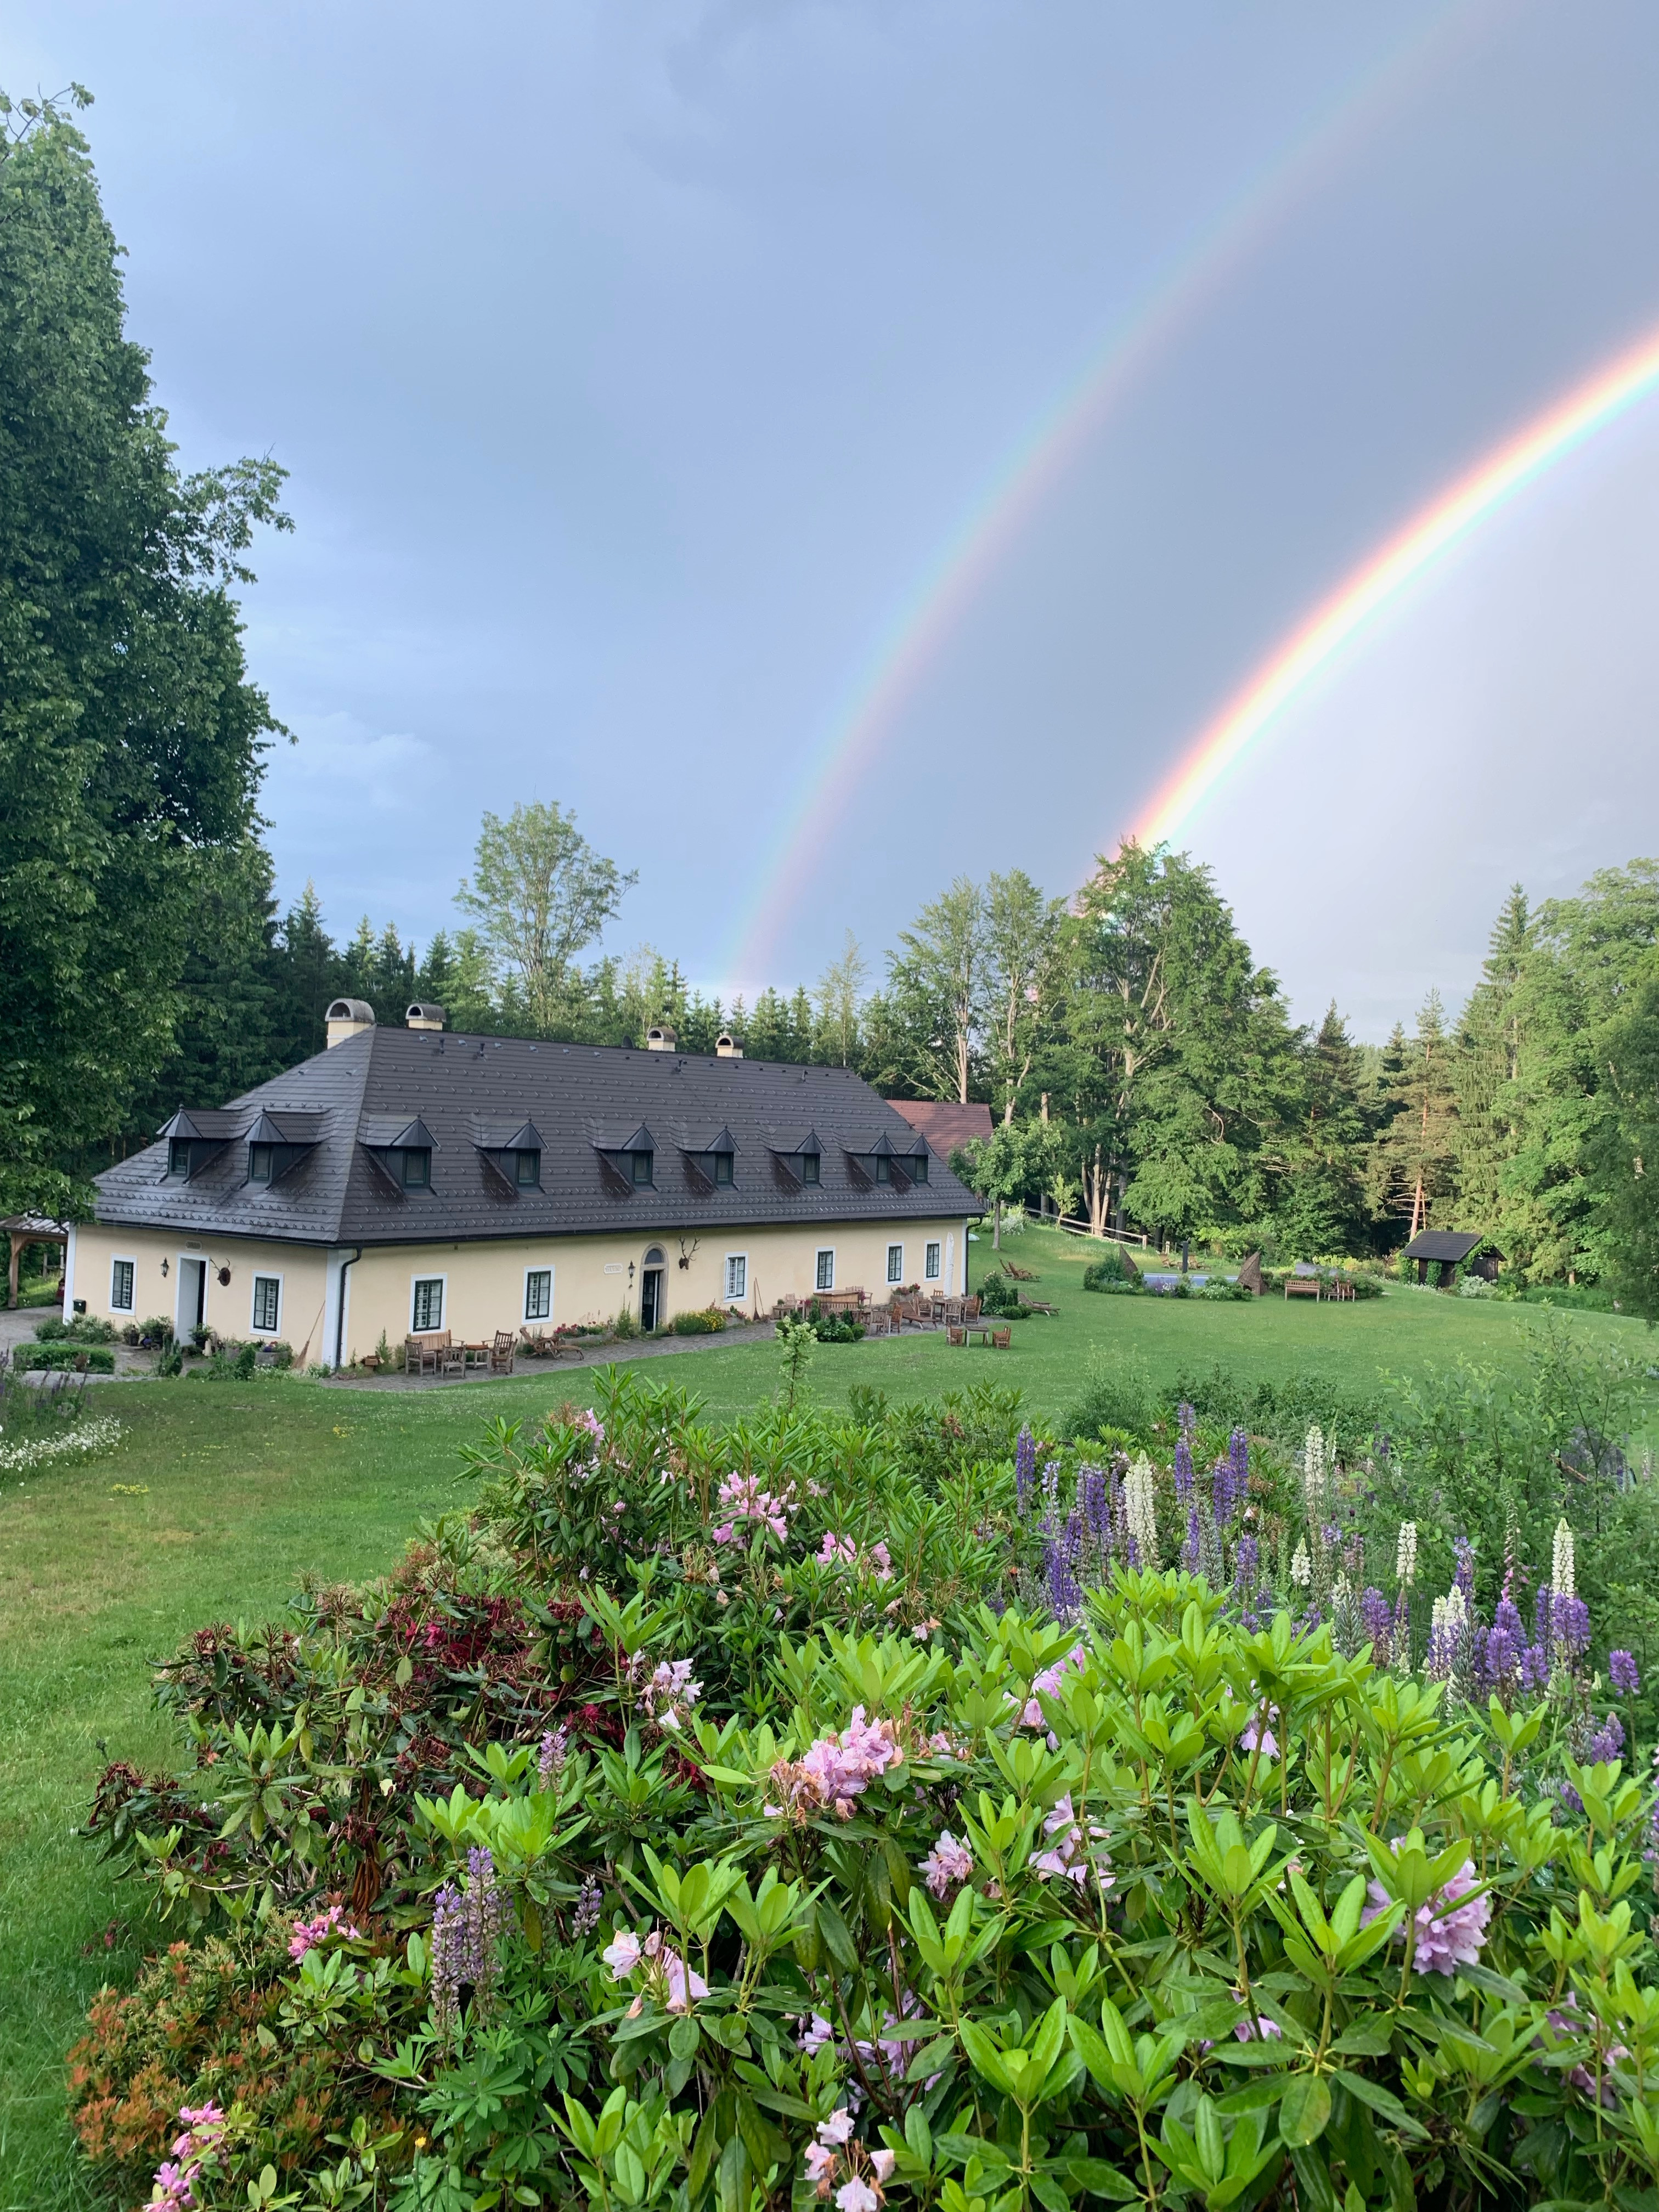 5 Tage Forsthaus all inclusiv